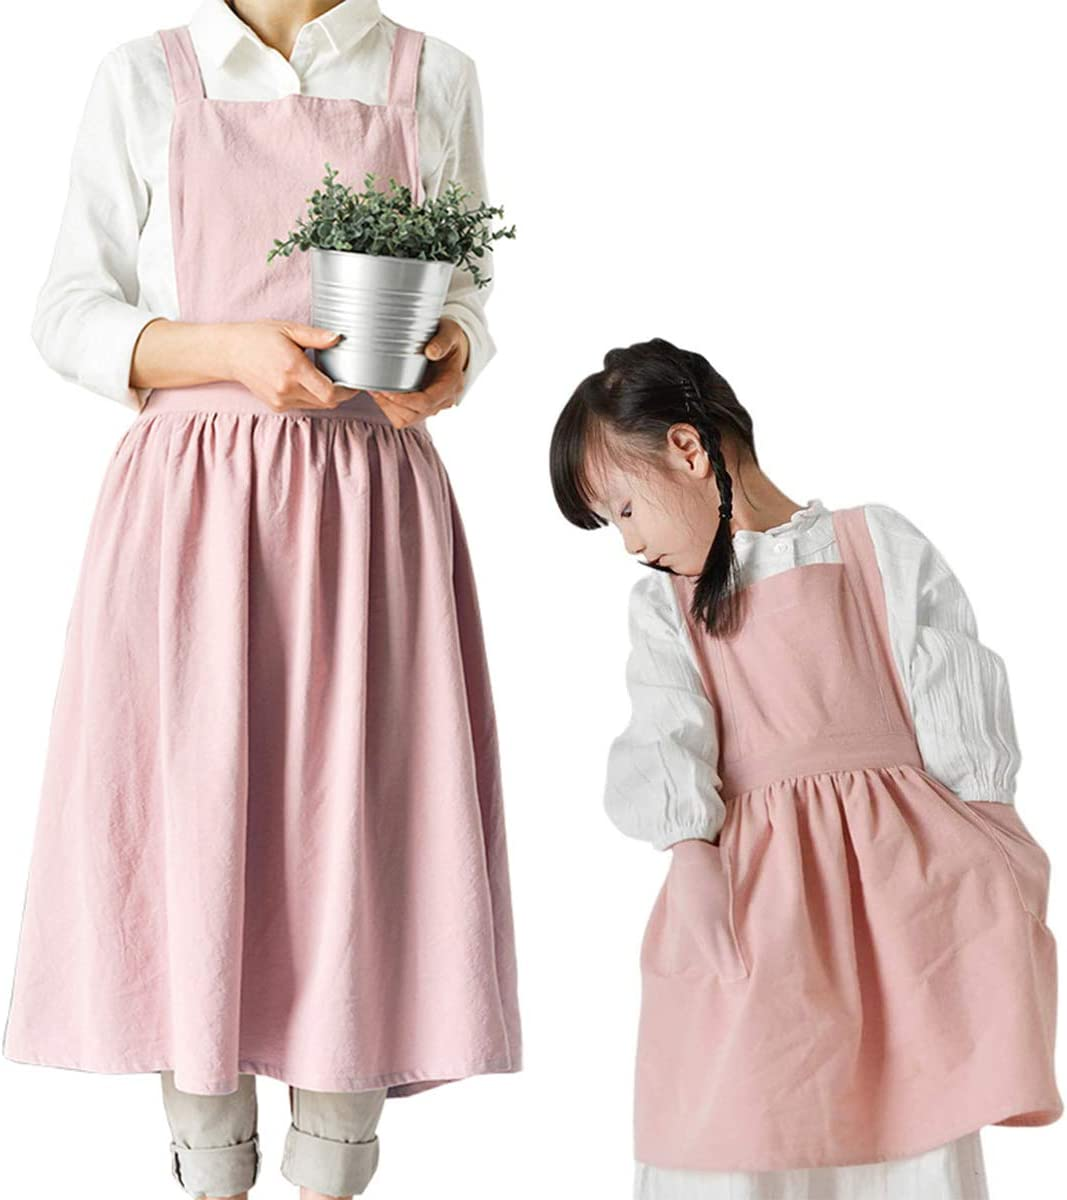 FMSBSC Apron Cotton New arrival and Linen an Recommended Parent Comfortable Child